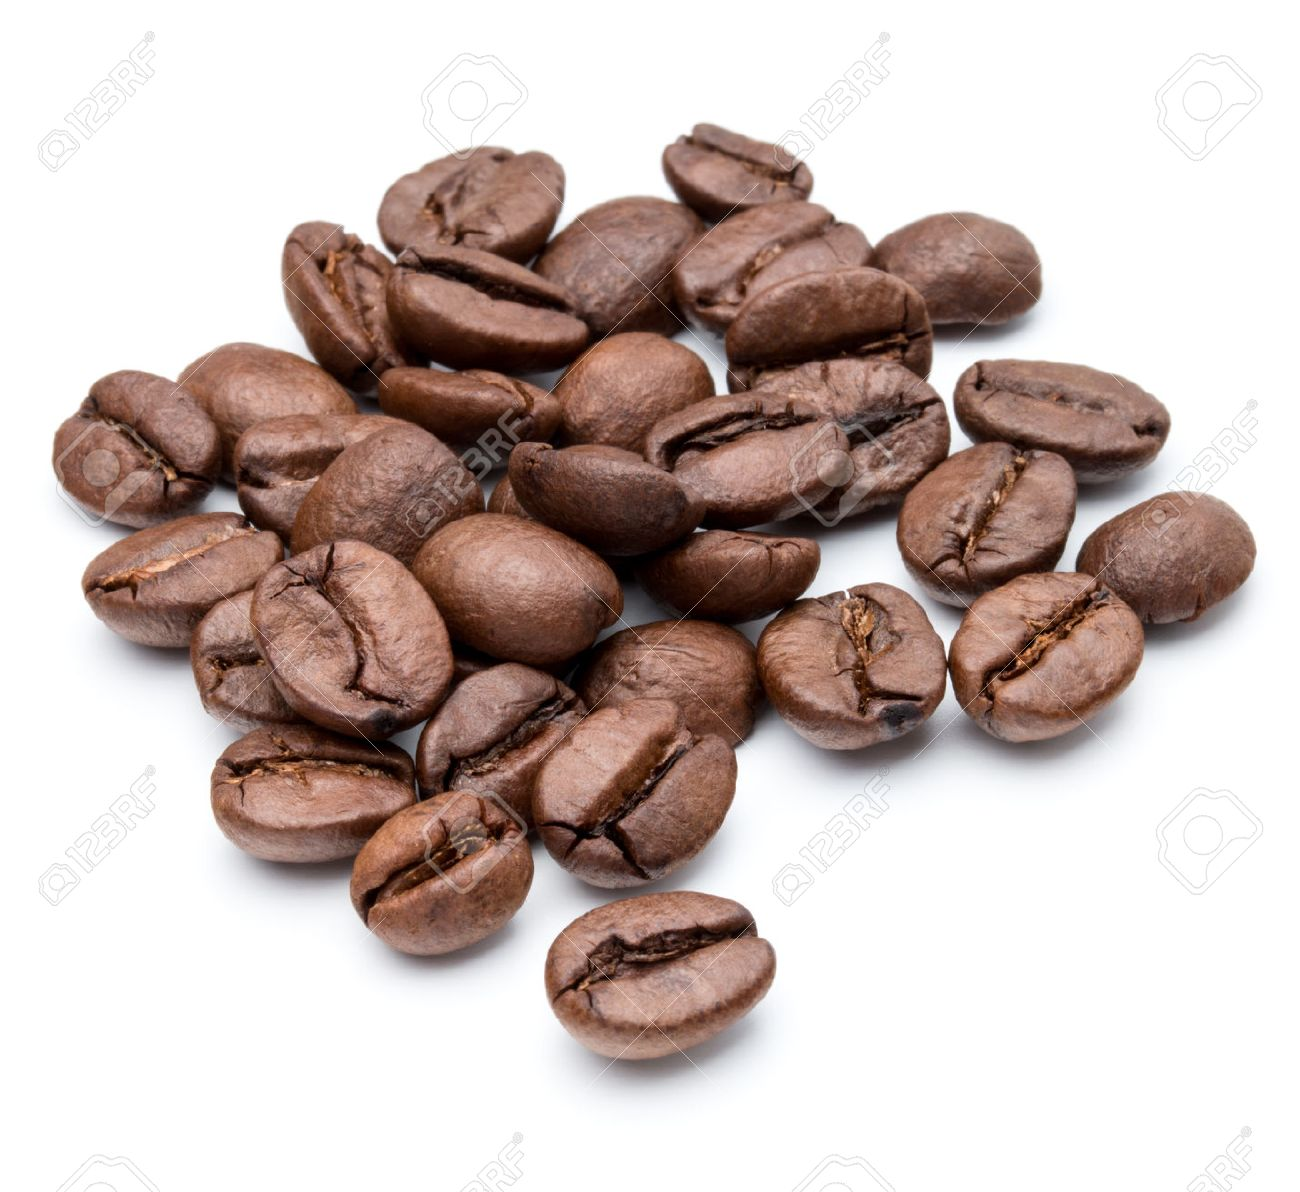 roasted coffee beans isolated in white background cutout - 42961030